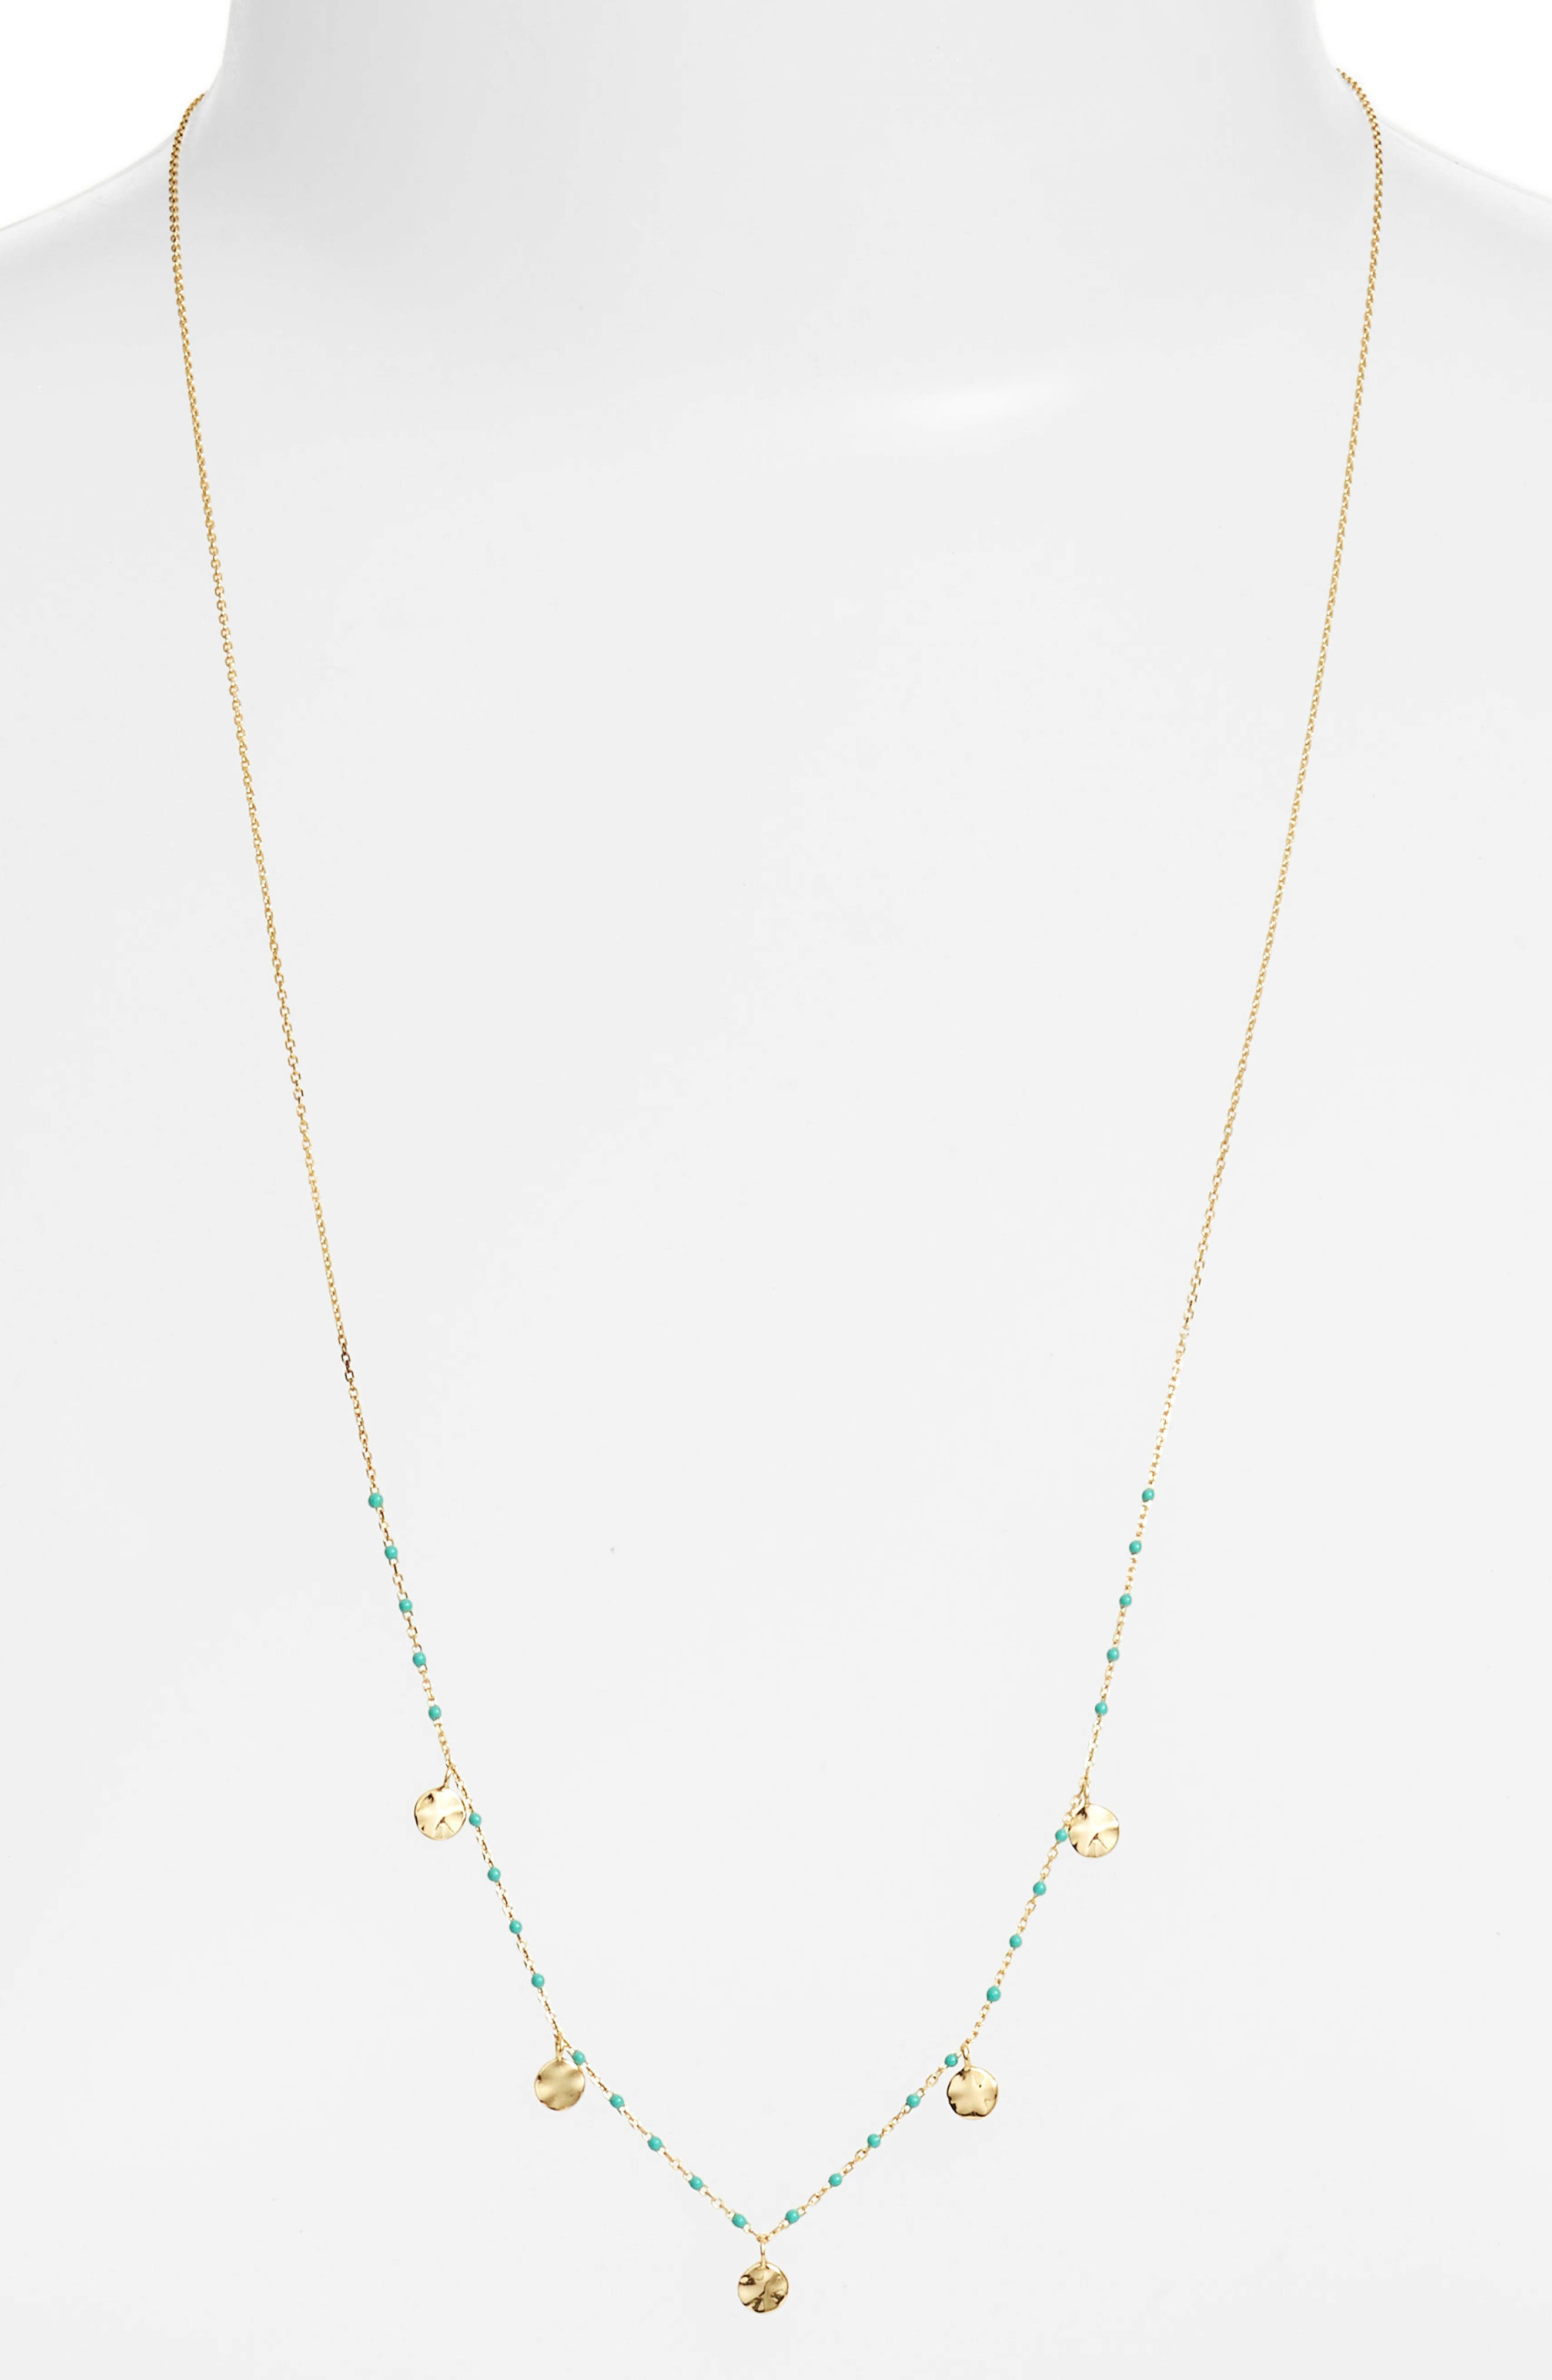 Enamel Bead Mirror Drop Necklace,                         Main,                         color, TURQUOISE/ GOLD